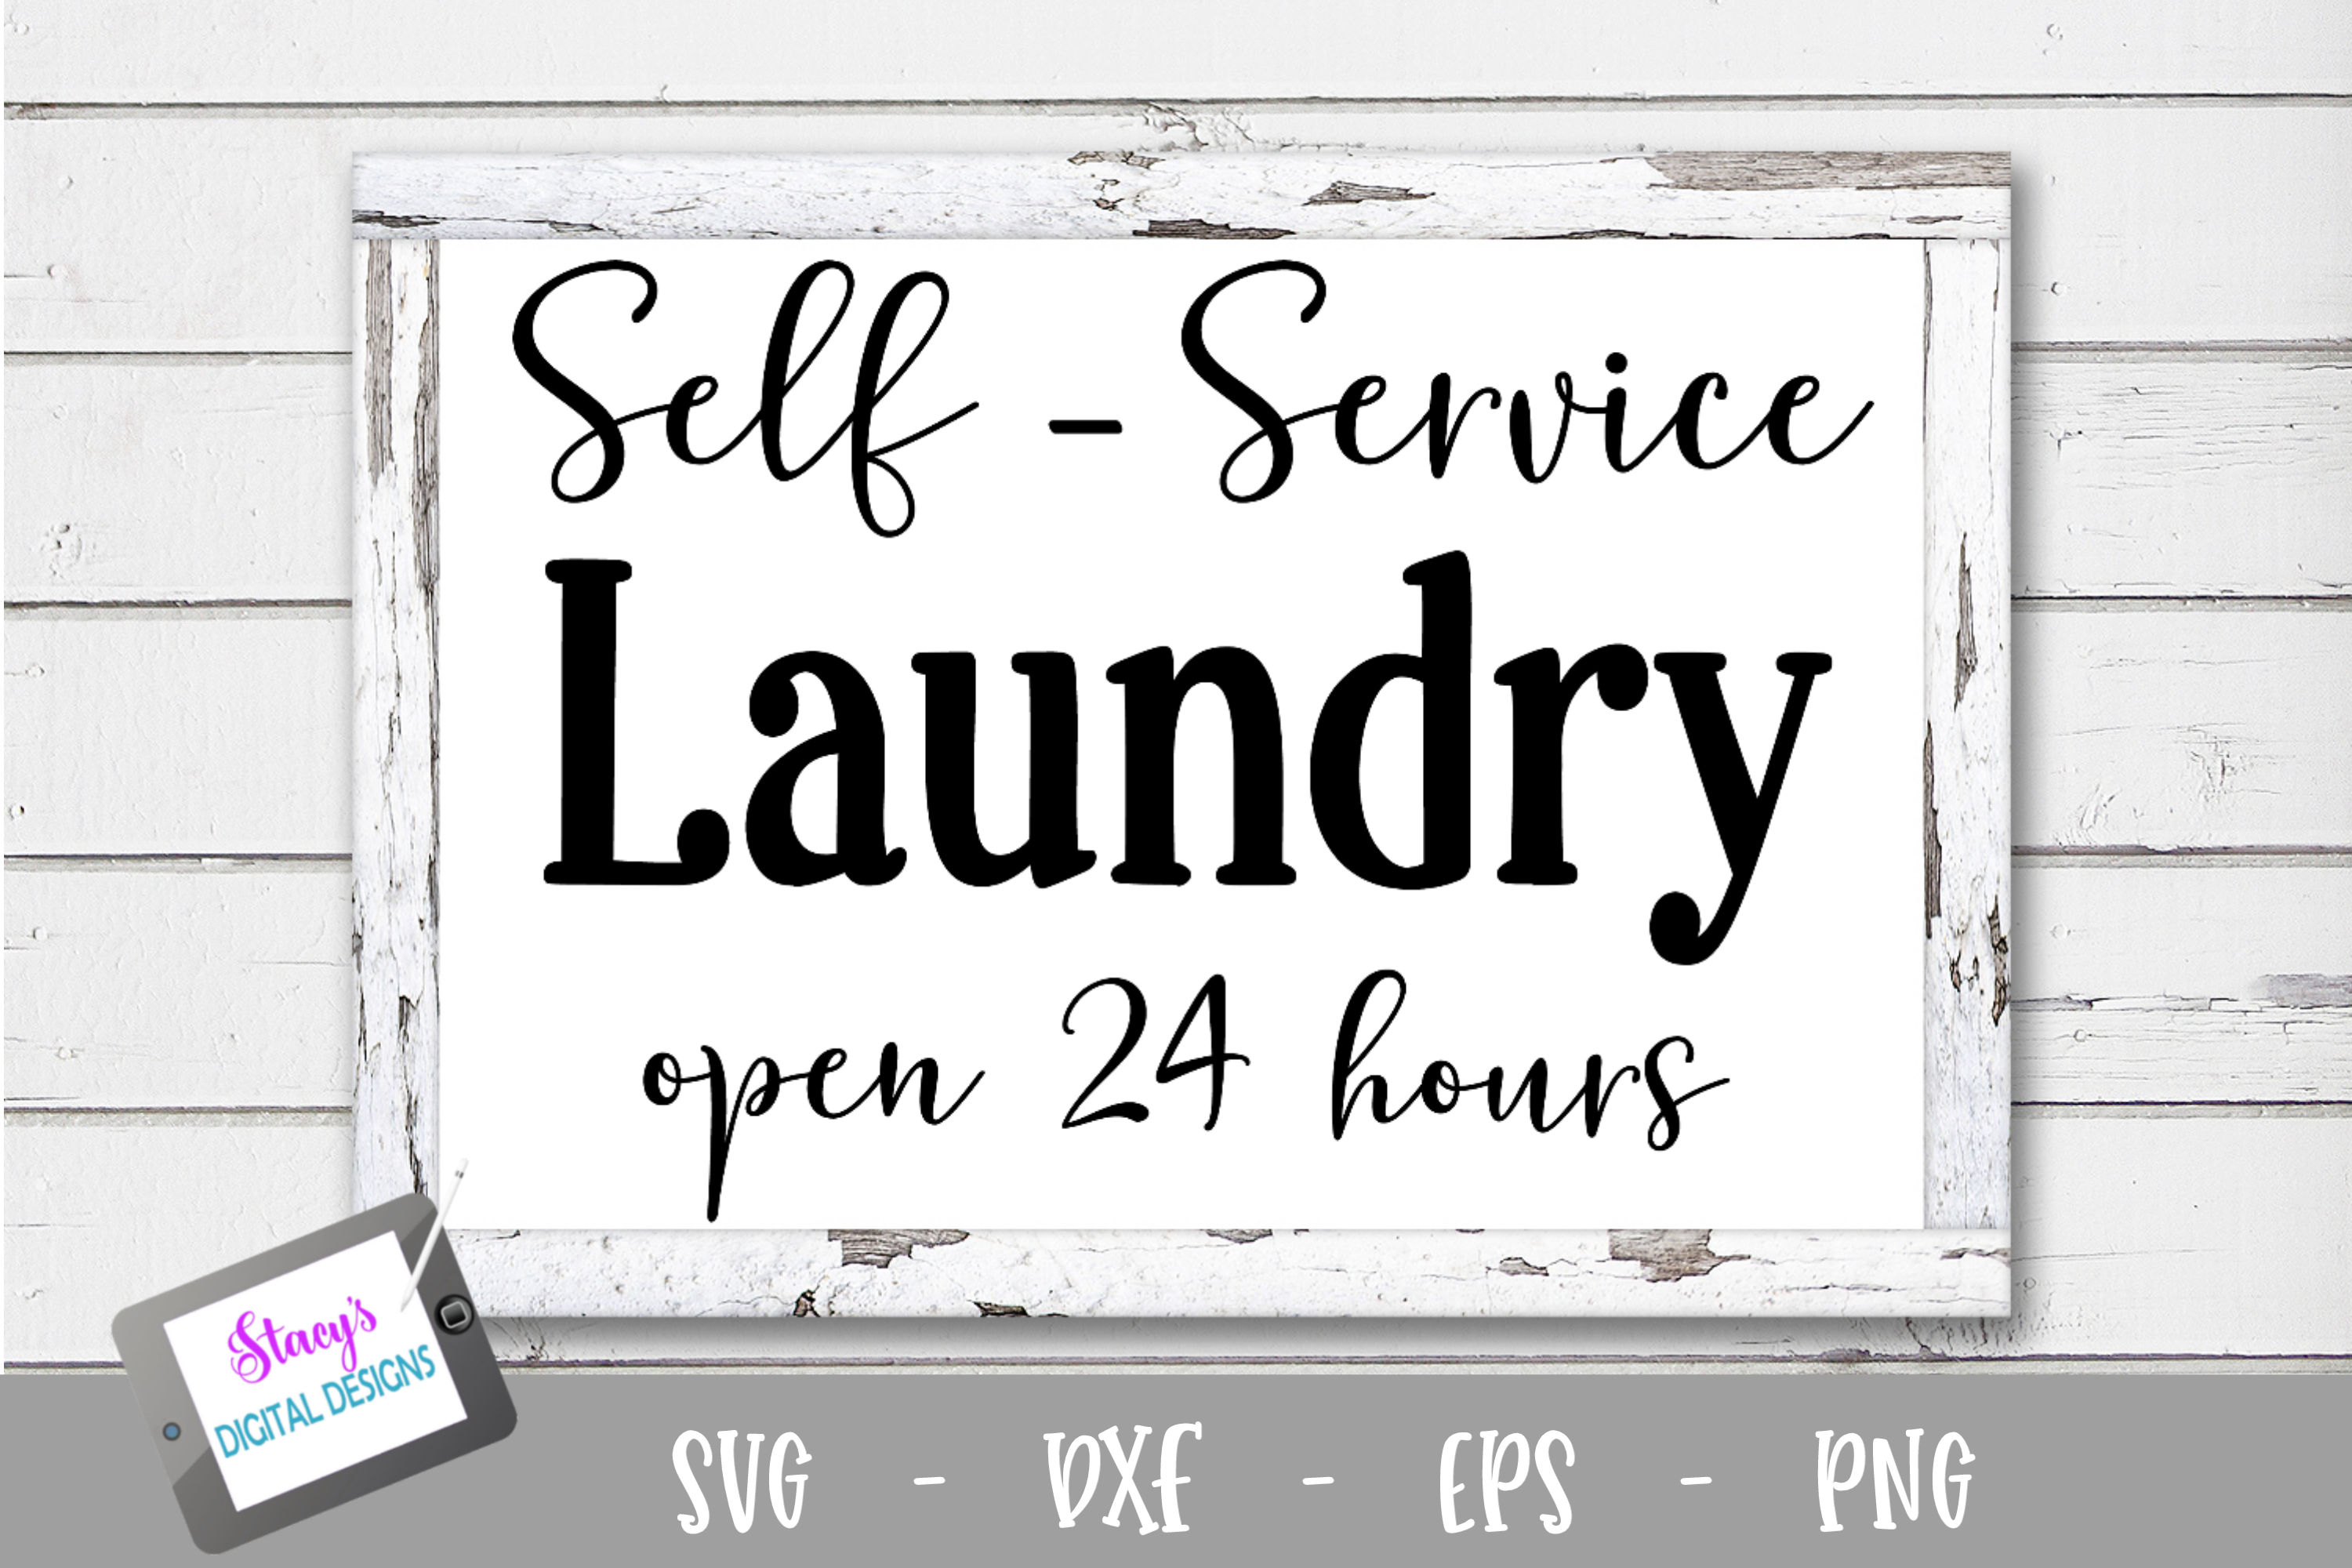 Laundry SVG - Self Service Laundry, open 24 hours example image 1